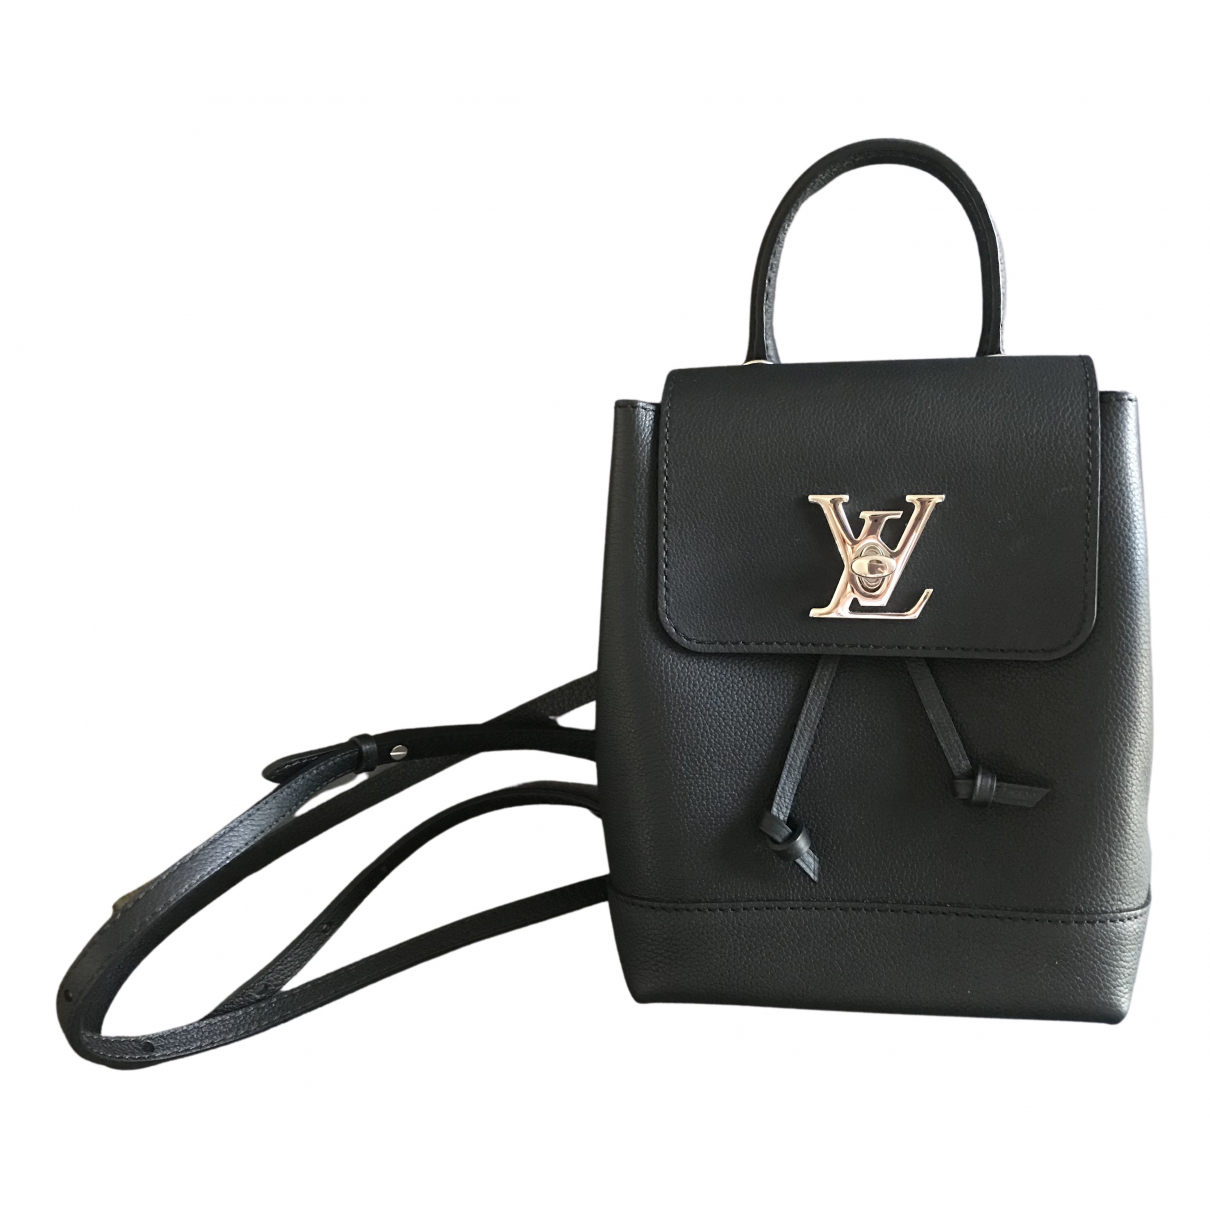 Louis Vuitton Lockme Rucksaecke in  Schwarz Leder